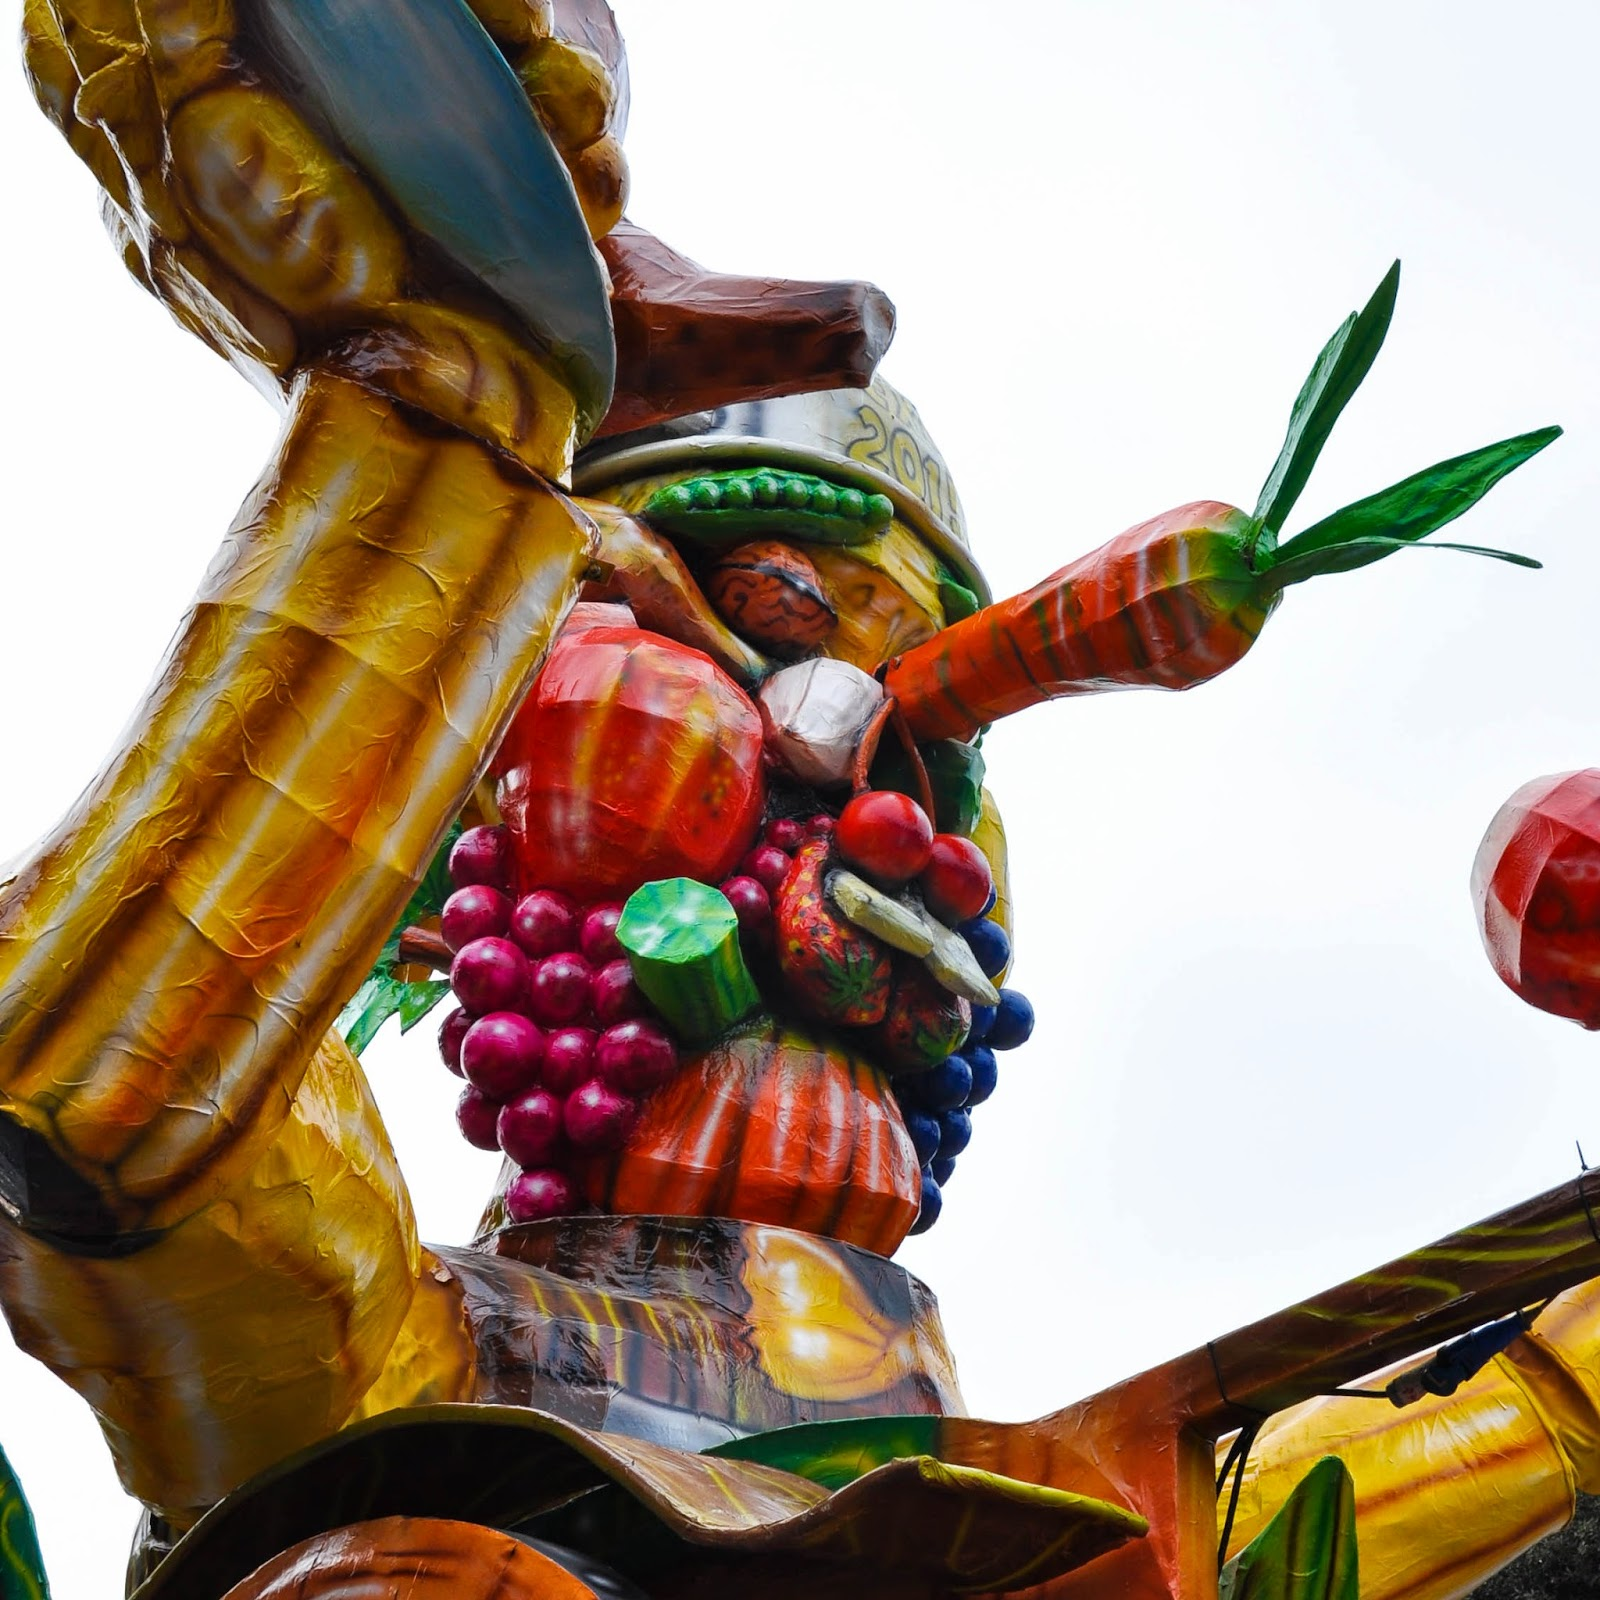 A papier mache figure fashioned after an Arcimboldo painting